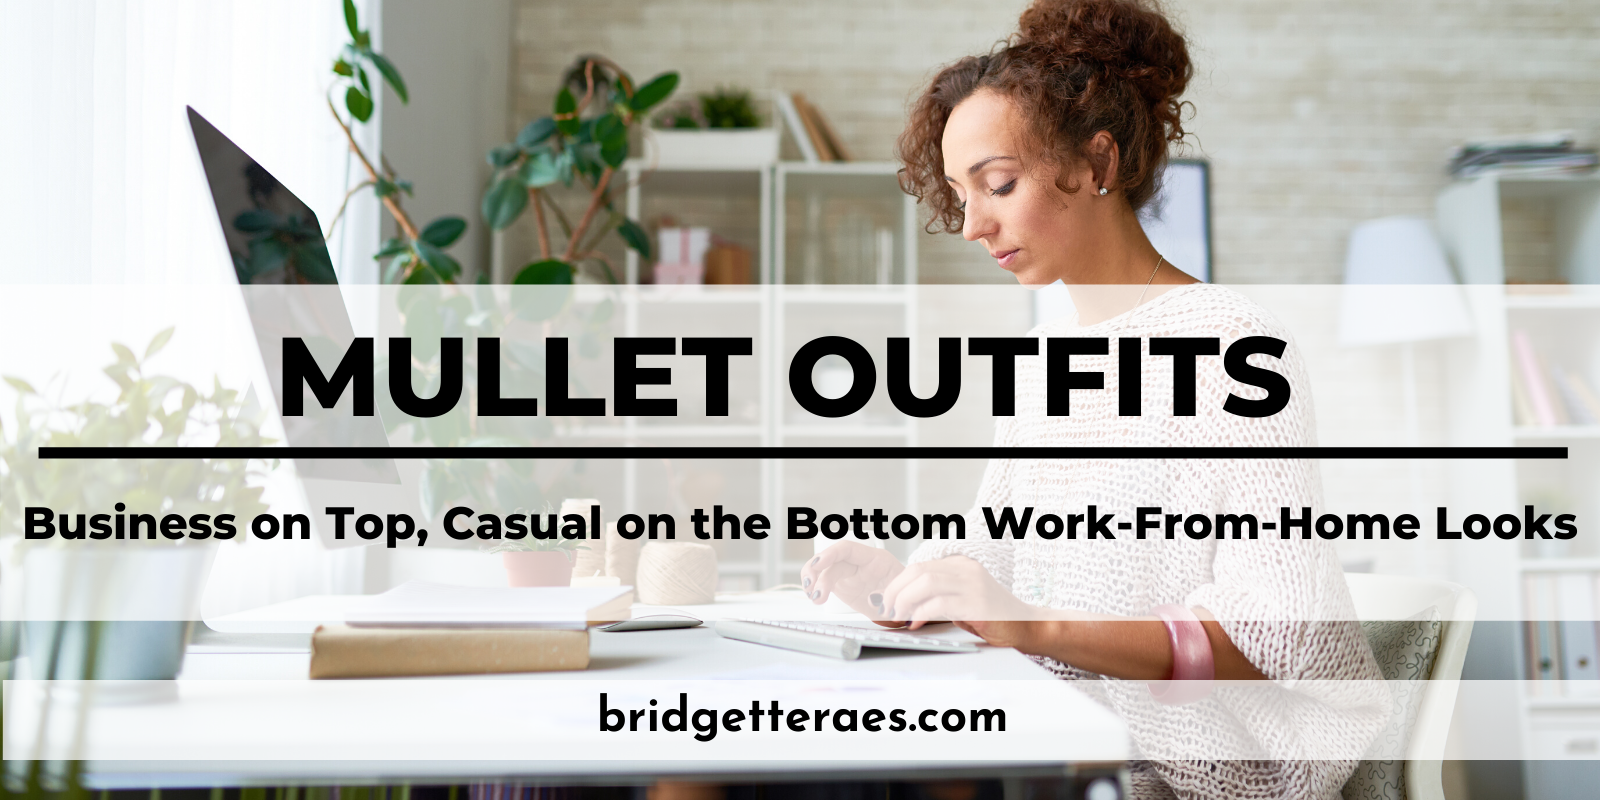 Mullet Outfits: Business on Top, Casual on the Bottom Work-from-Home Looks